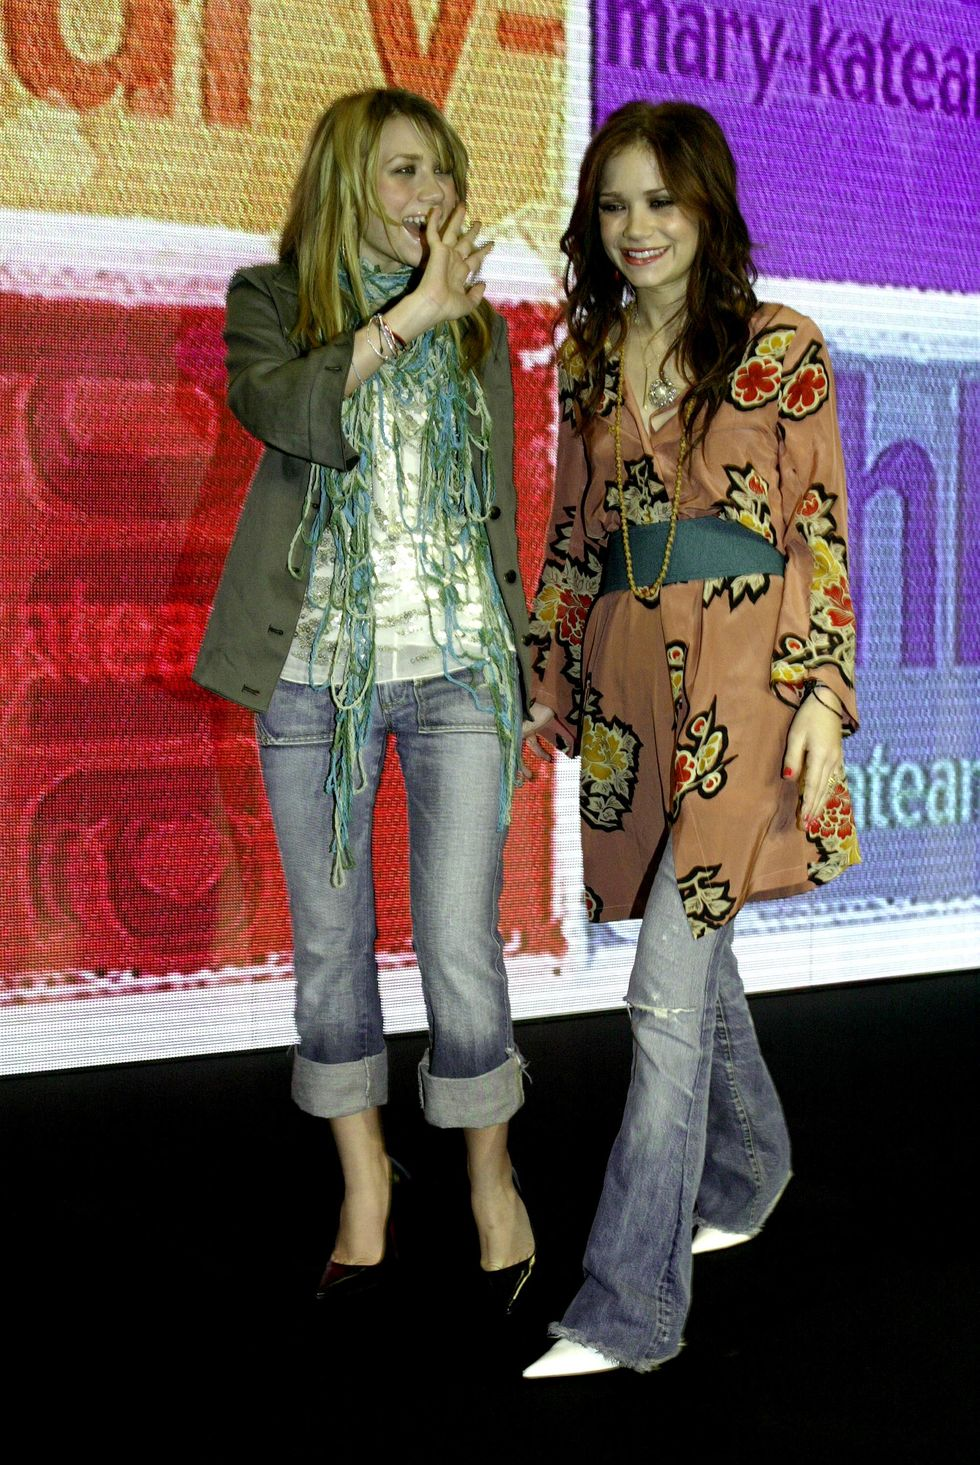 February 11, 2004 At the launch of their clothing line in Paris, the twins went for very different looks. Ashley wore a olive green blazer and blue jeans combo and Mary-Kate sported a belted dress over flared blue jeans.